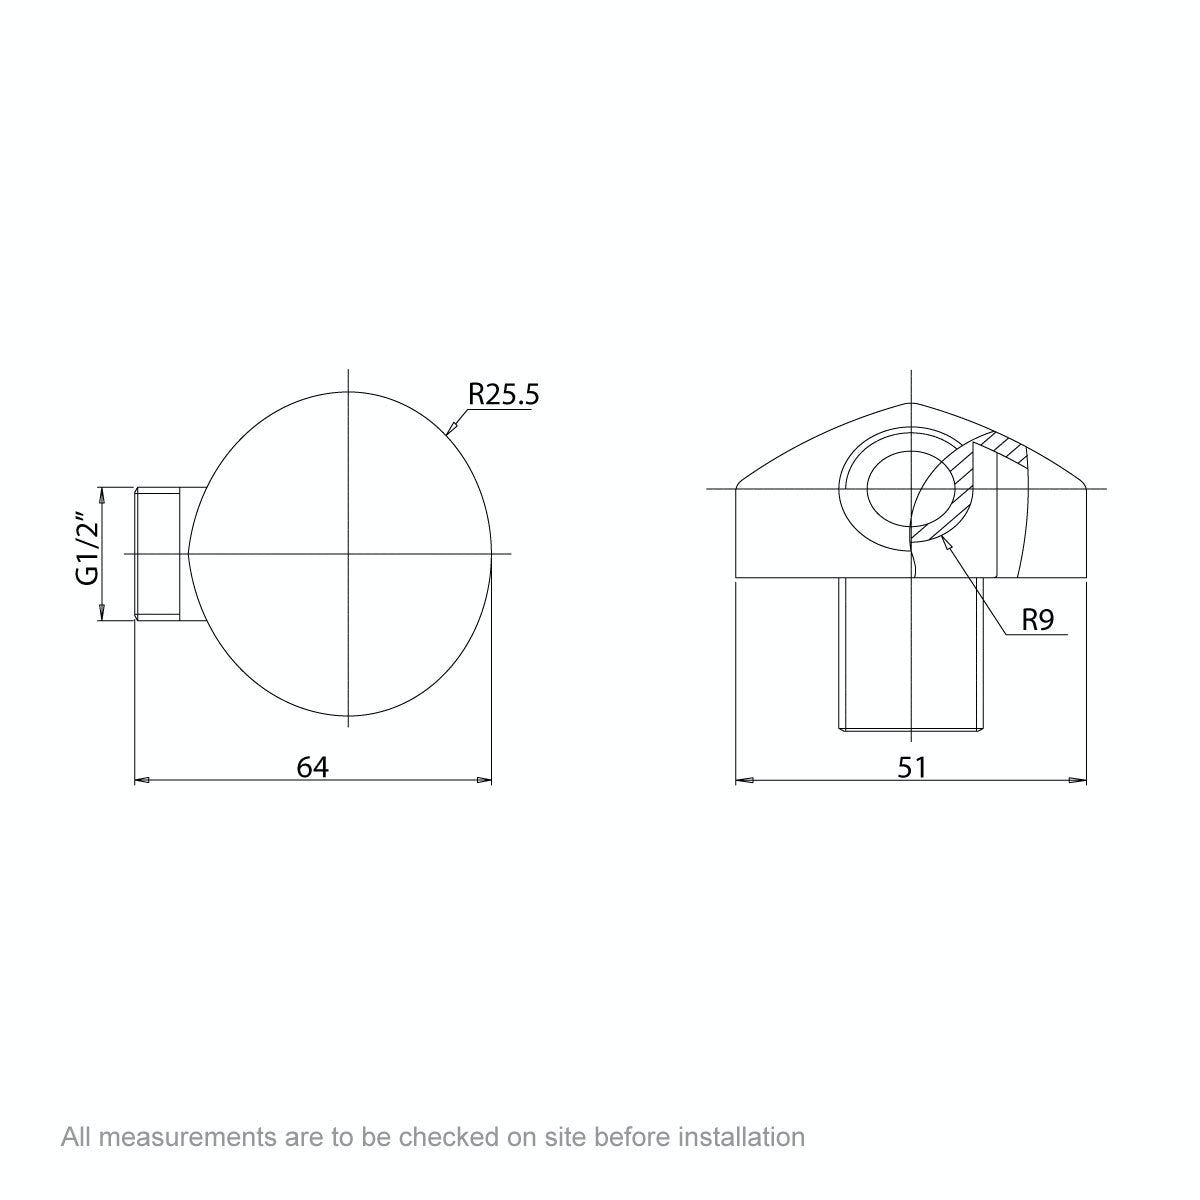 Dimensions for Orchard Round Shower Outlet